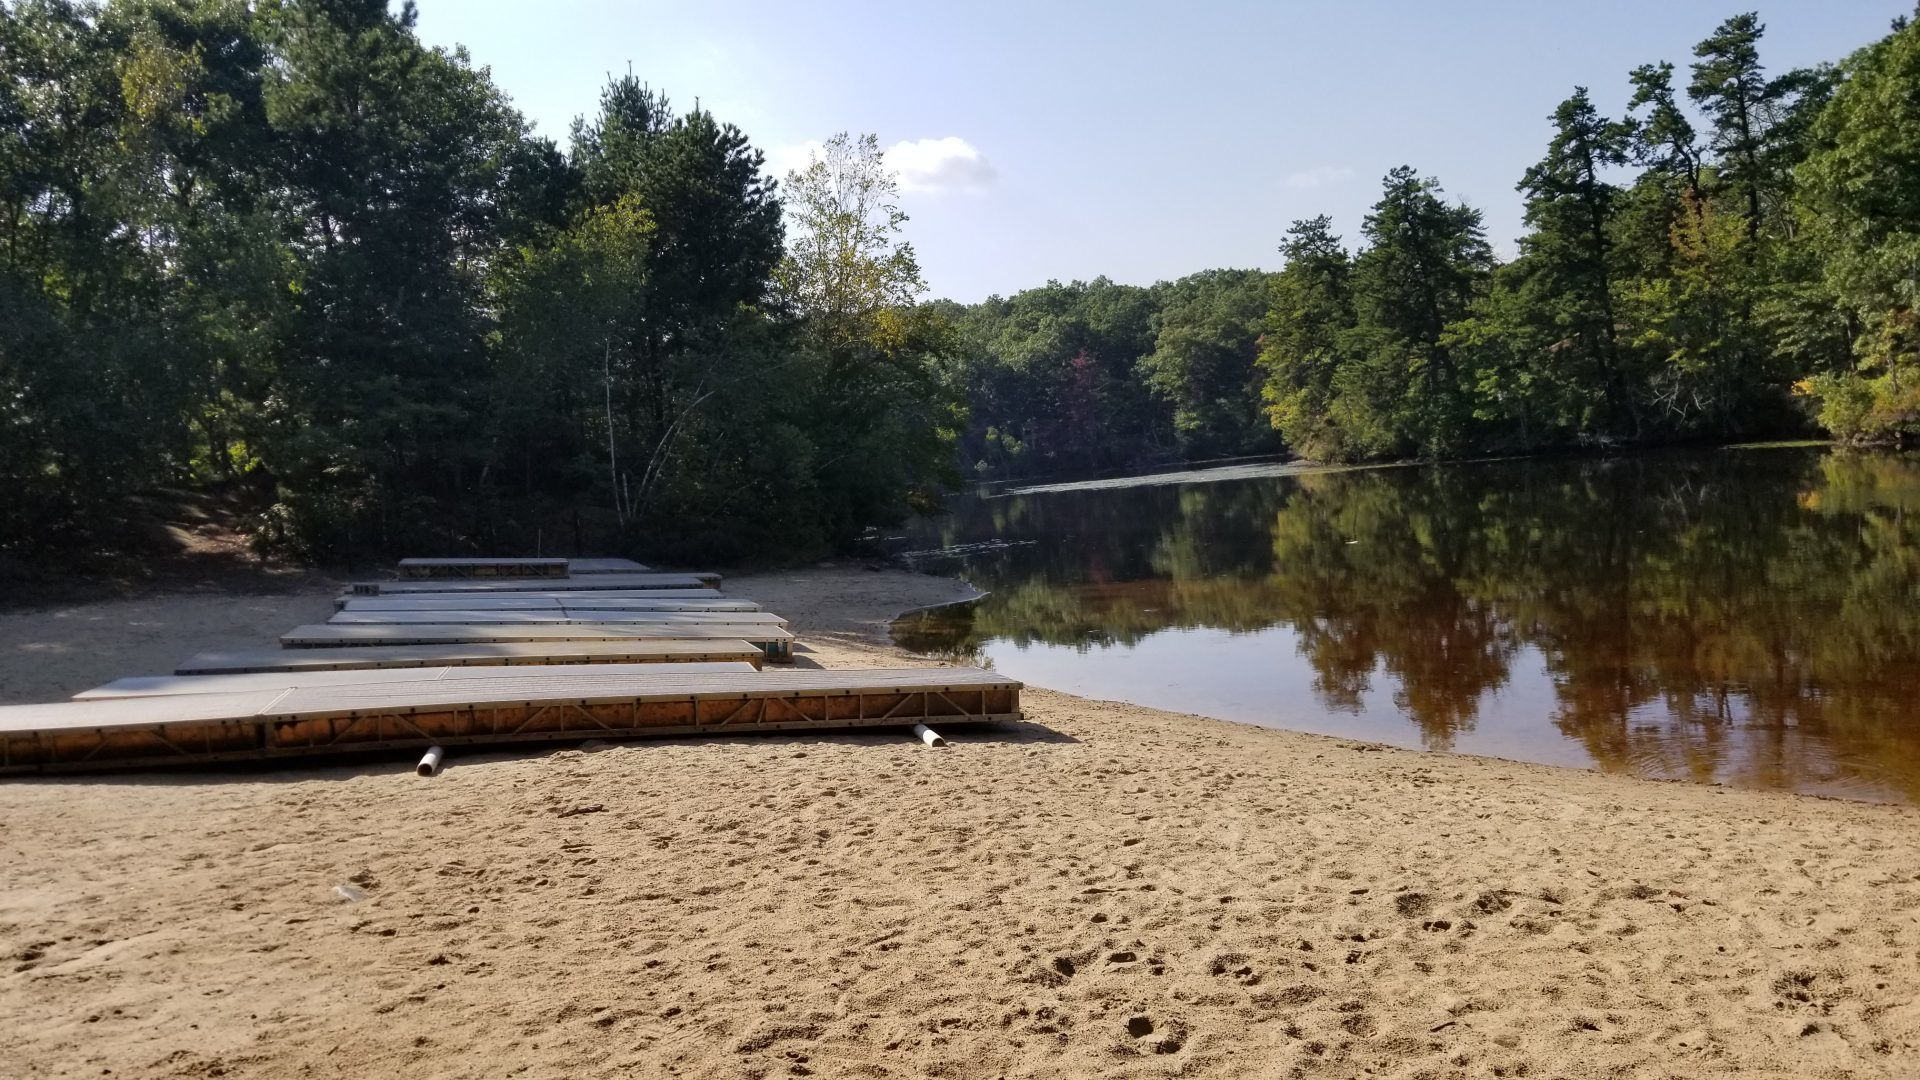 Powissett pond fishing hale reservation dover for Public fishing areas near me